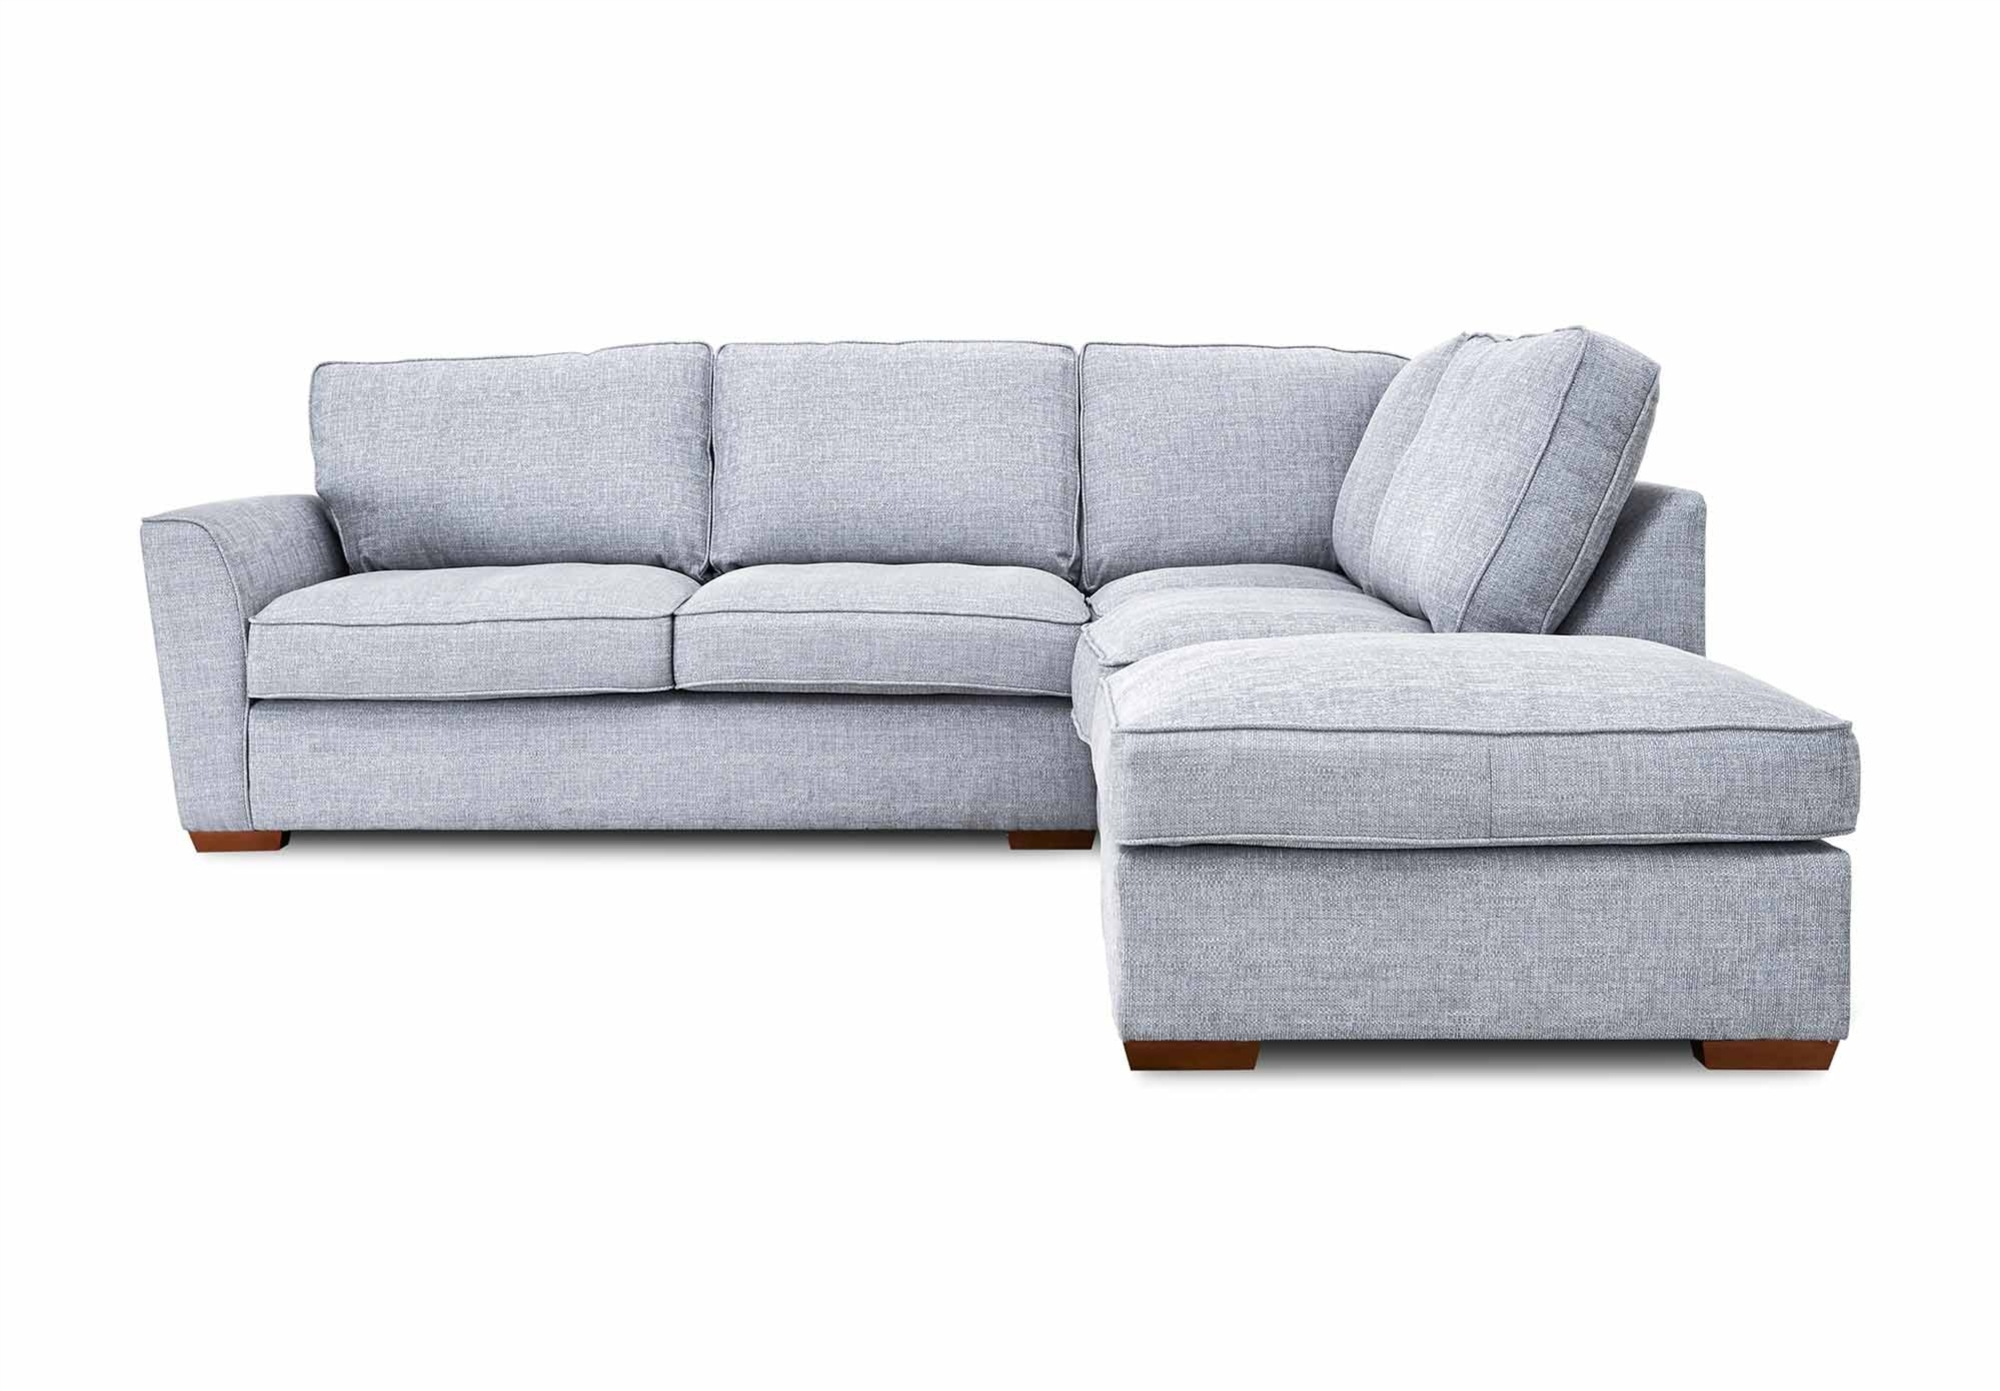 Rhf Classic Back Corner Sofa Fable Gorgeous Living Room Pertaining To Corner Sofa Chairs (Image 12 of 15)